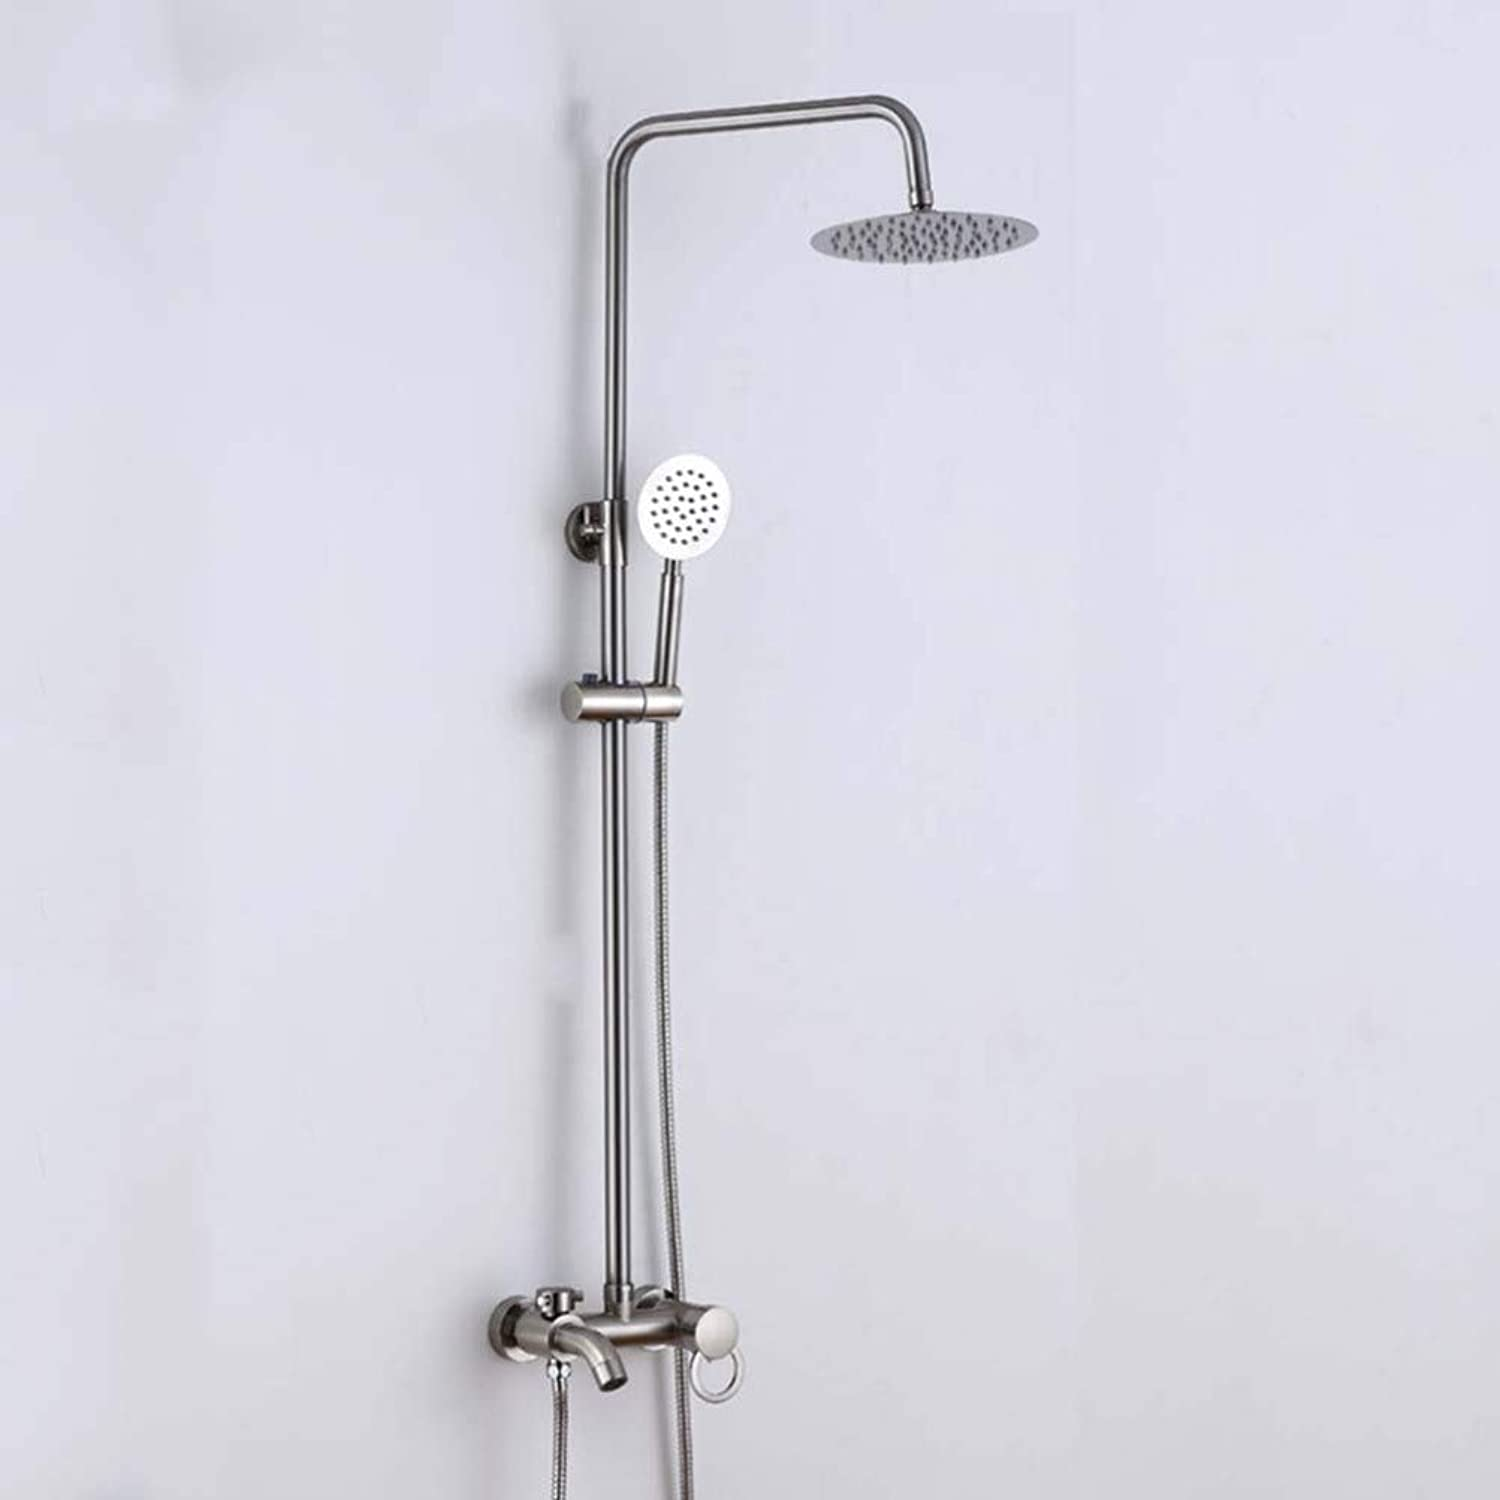 CF shower set wall mounted hot and cold adjustment lift shower set shower set